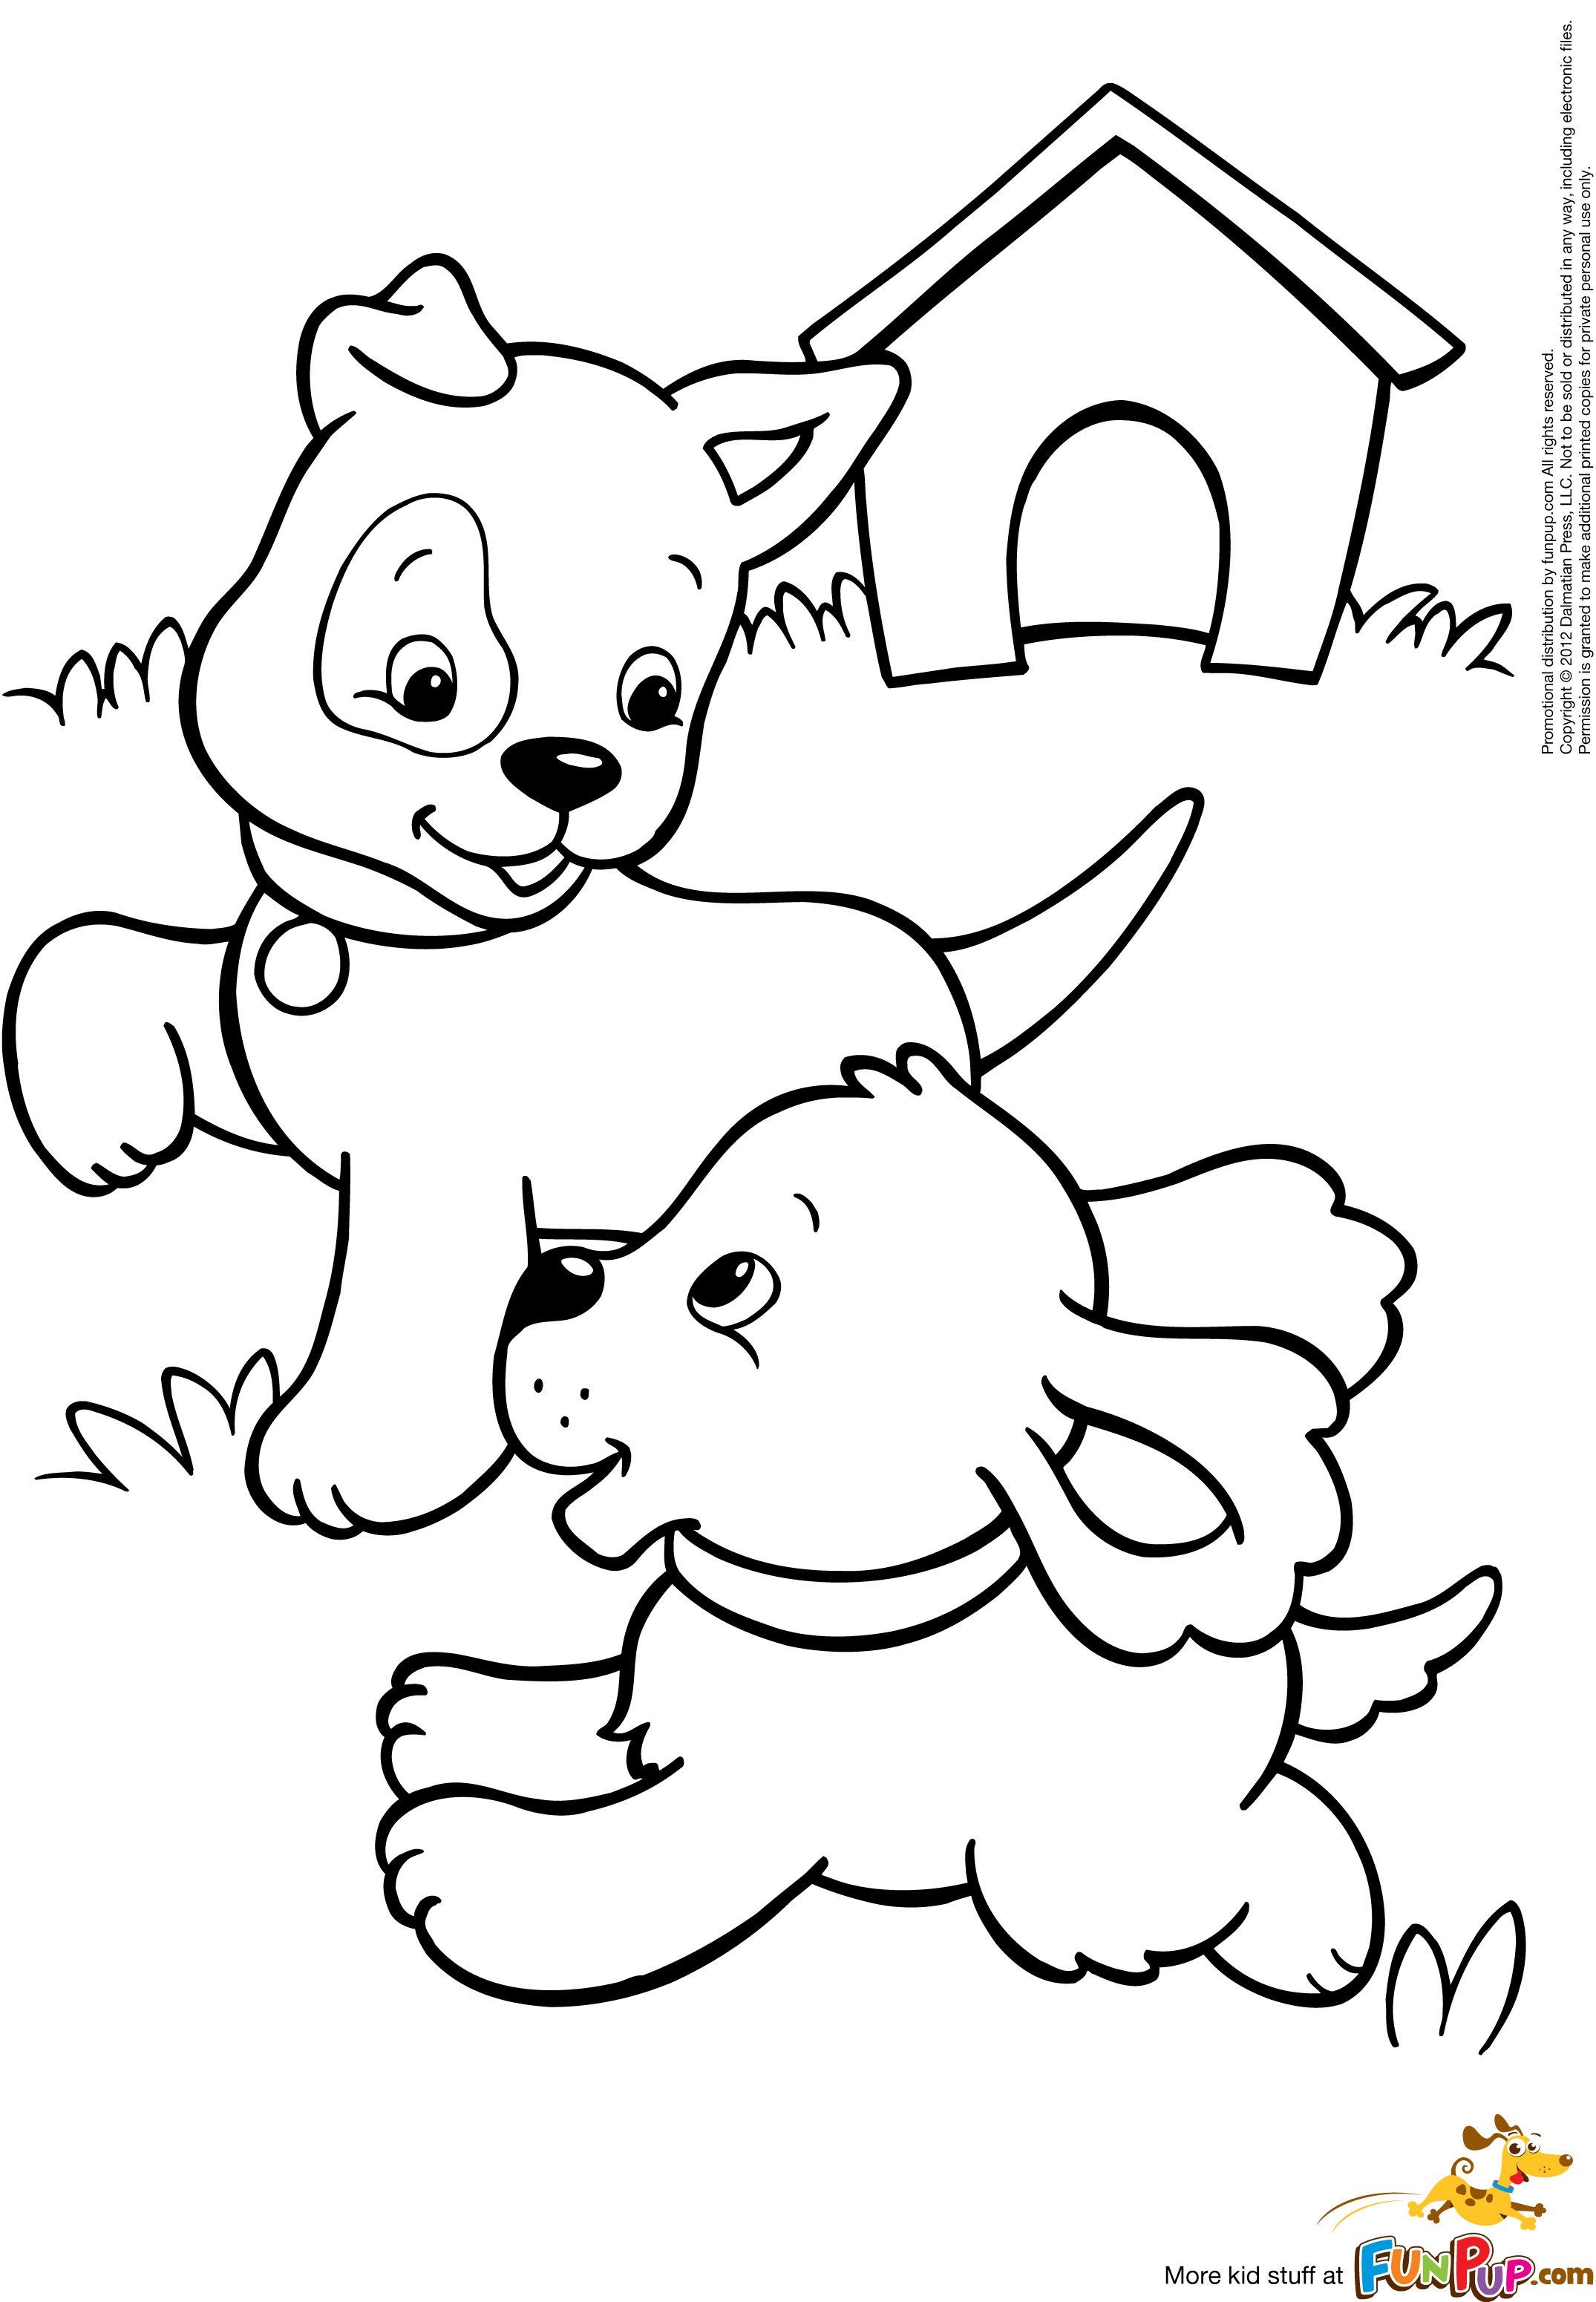 cute puppy coloring pages - realistic puppy coloring pages download and print for free